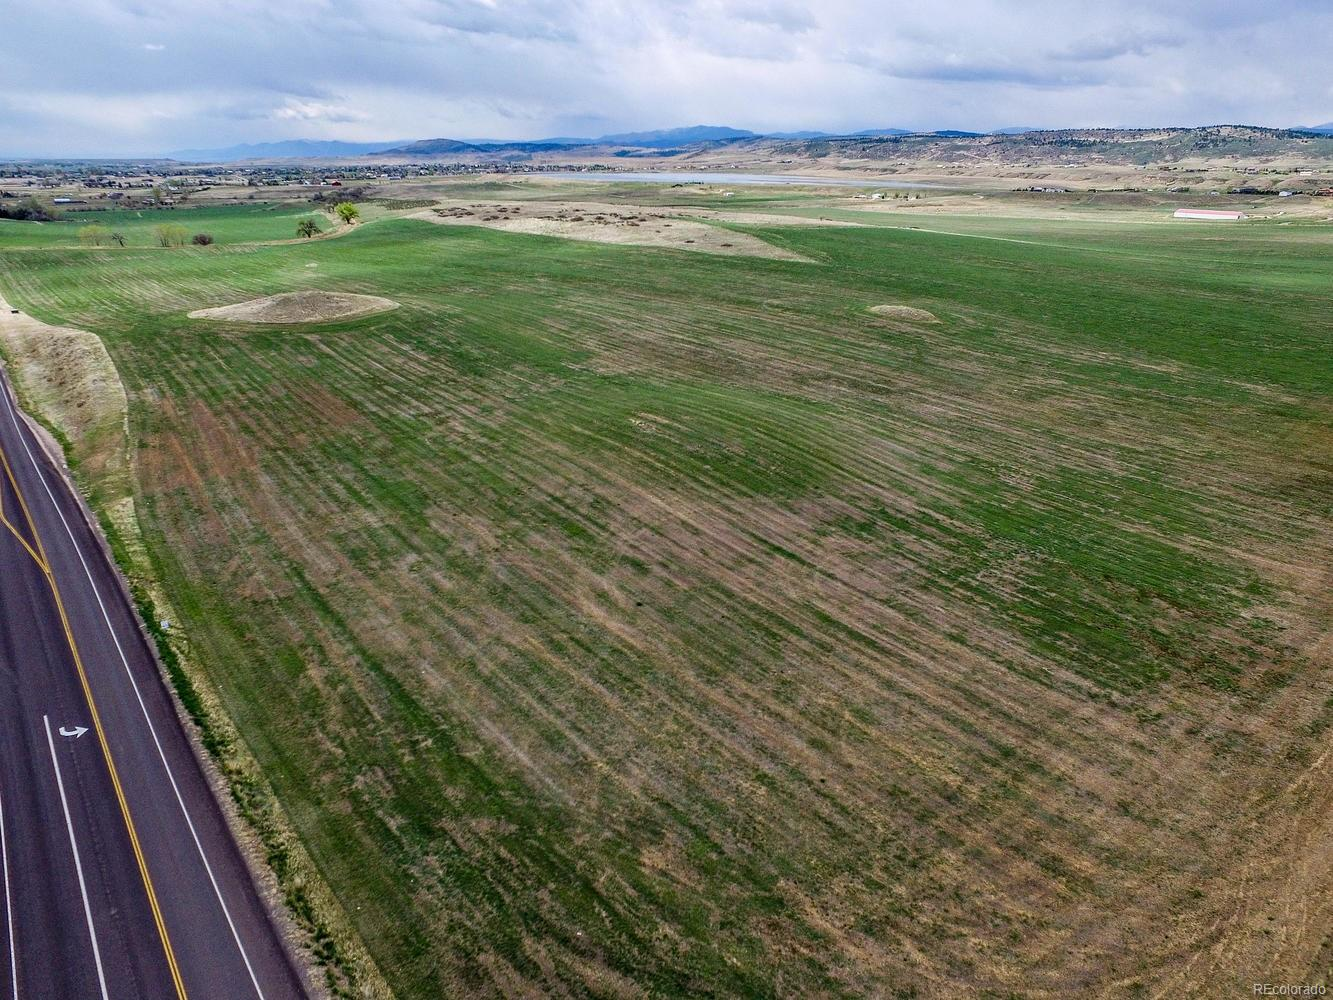 0 Carvin Court, Berthoud, CO 80513 - Berthoud, CO real estate listing